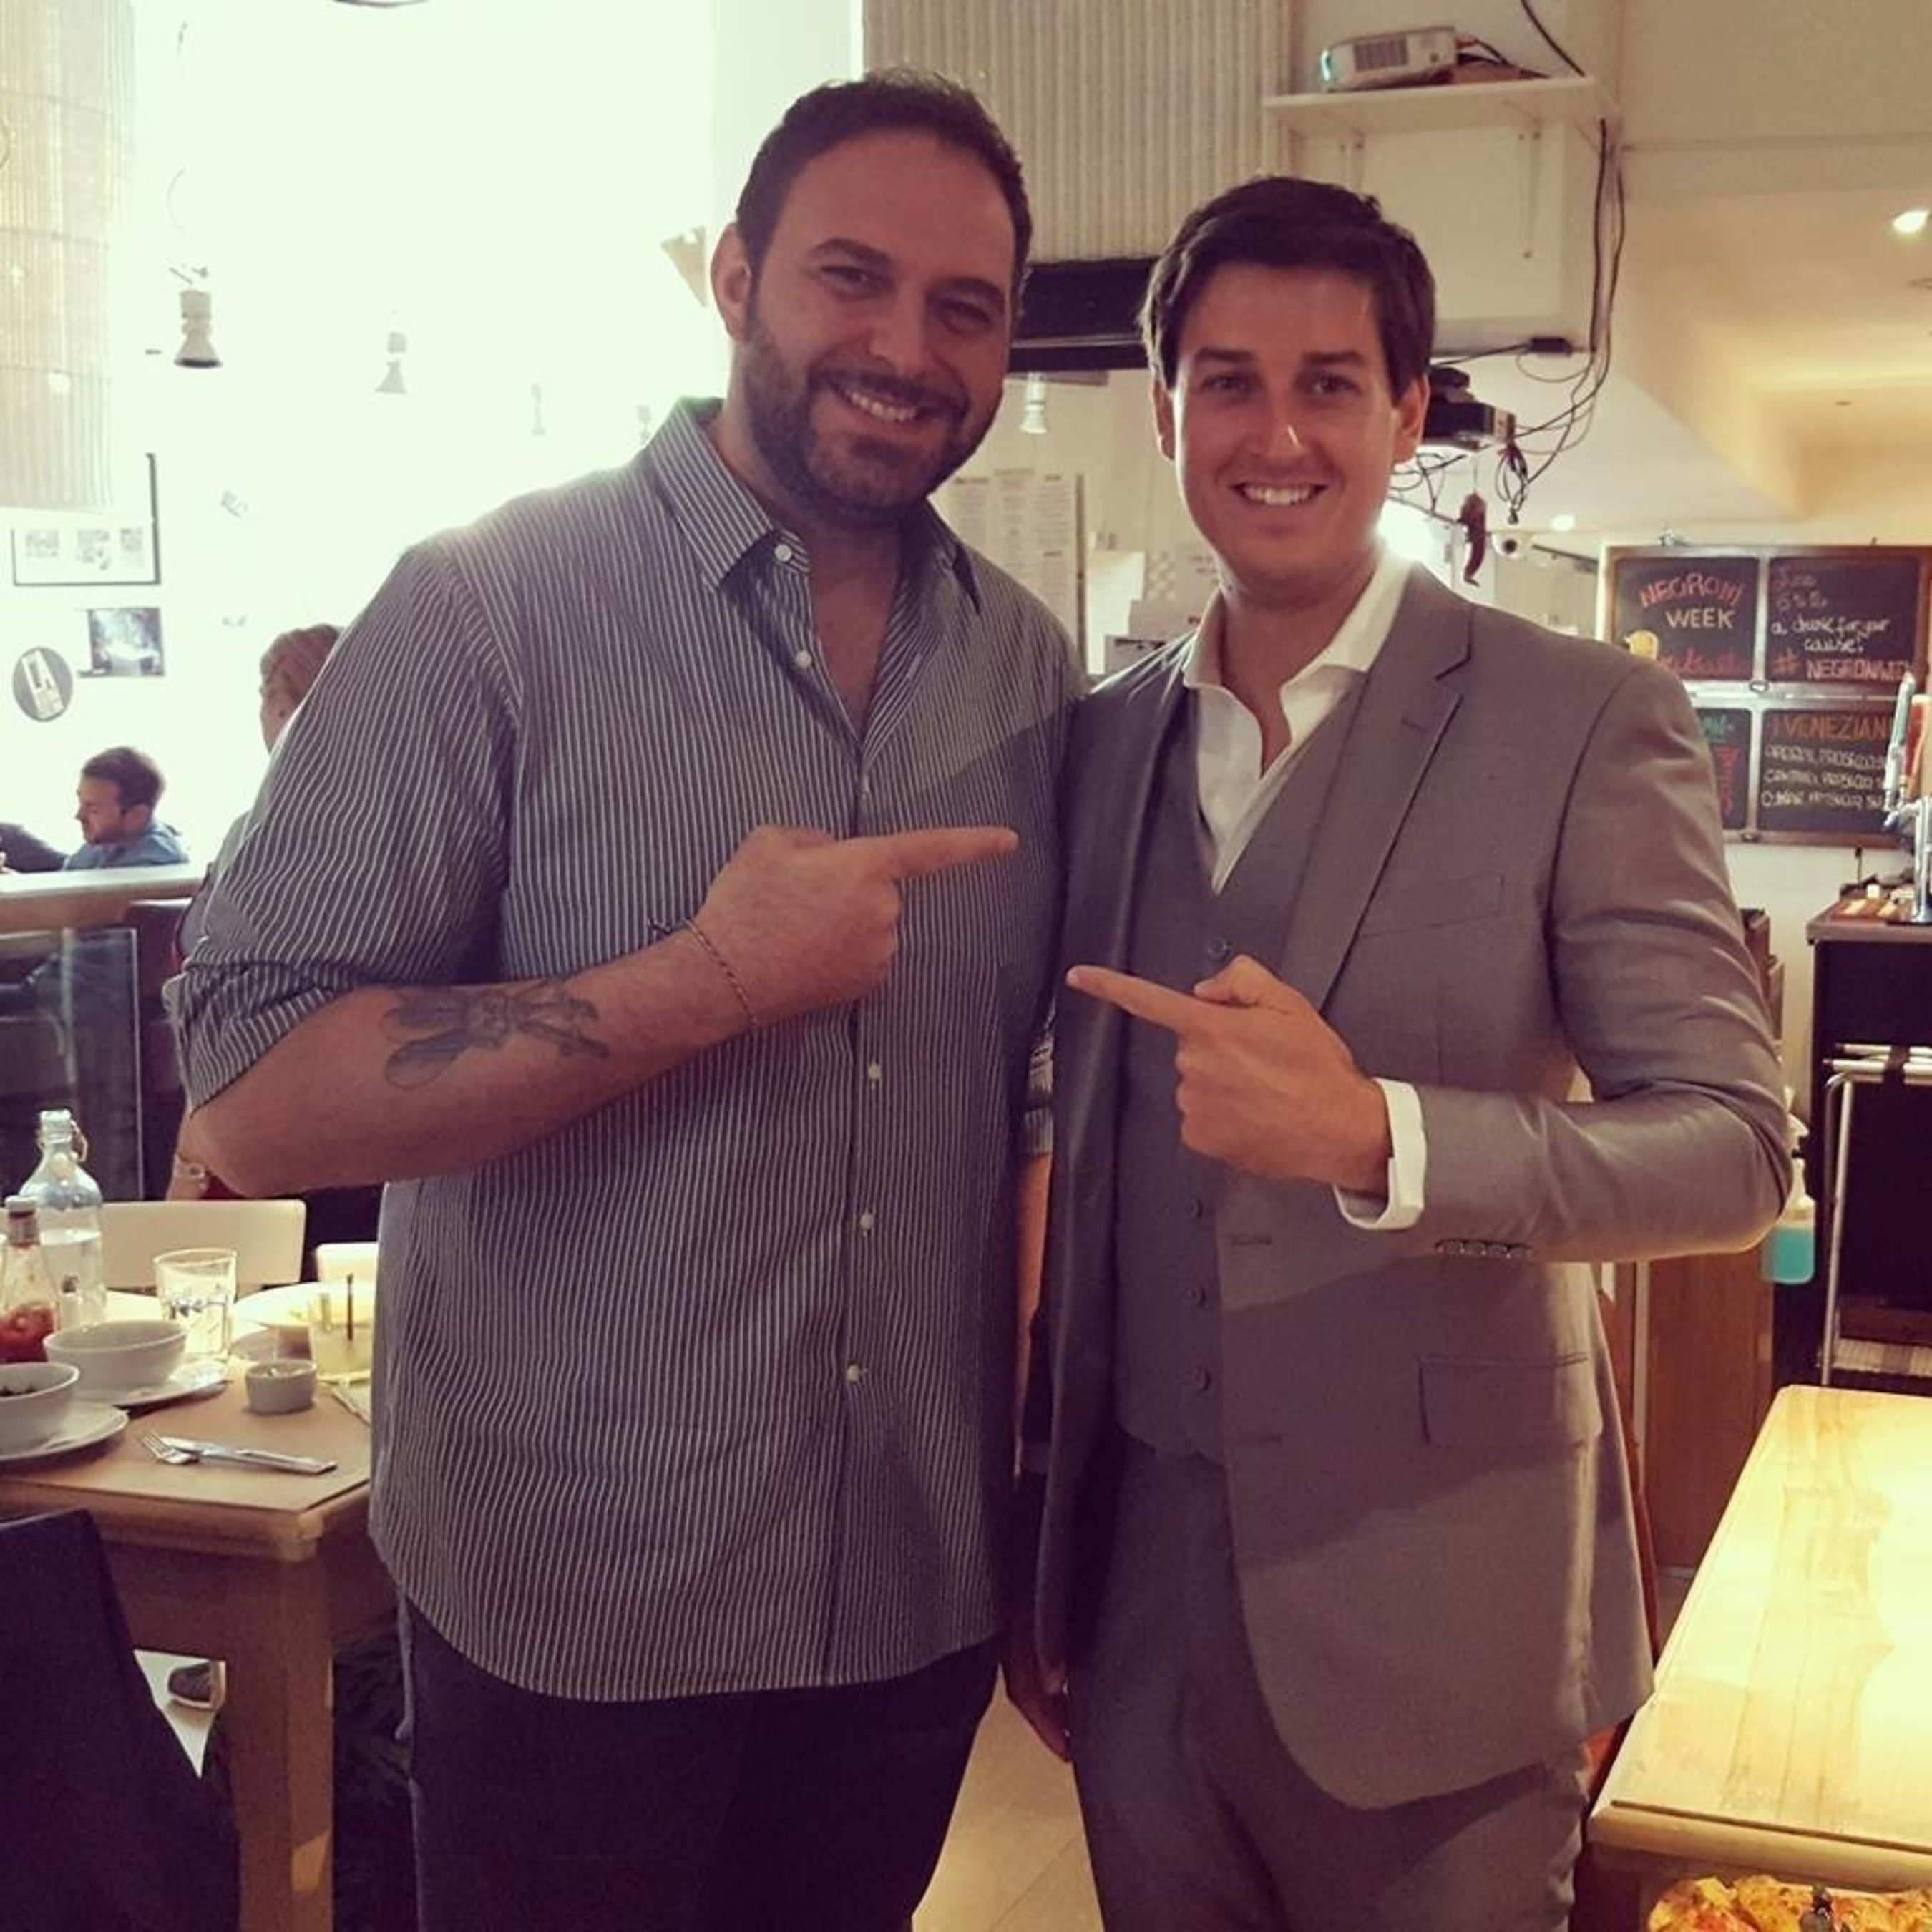 BeeHex, Inc. Chief Marketing Officer Jordan French with Ribalta Chef Pasquale Cozzolino